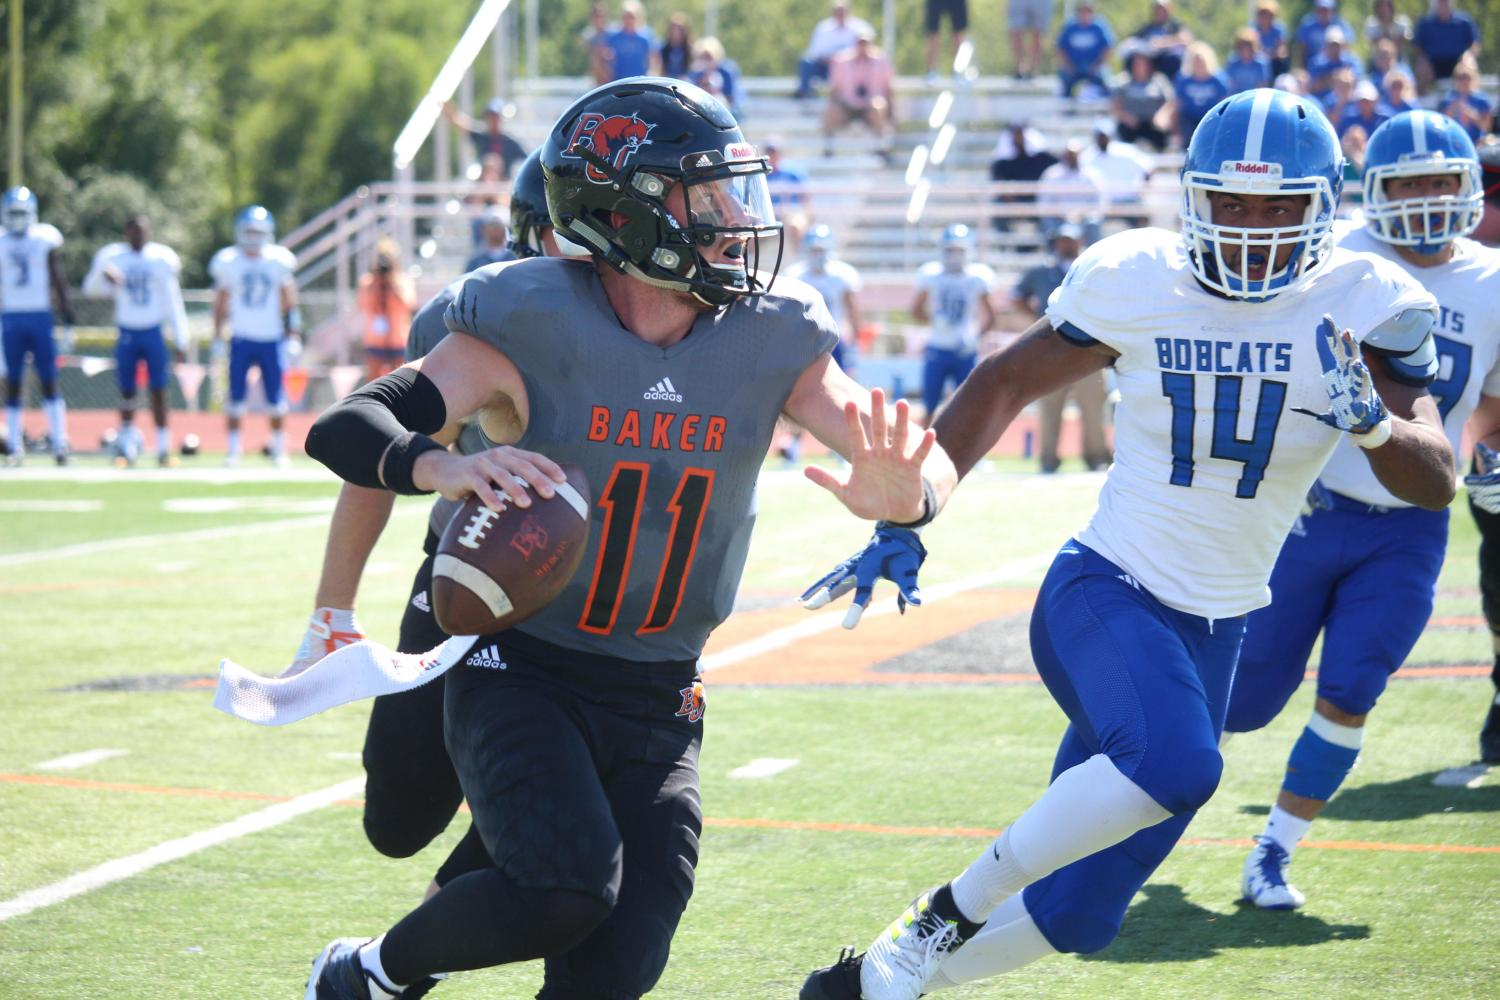 Quarterback Logan Brettell scrambles and looks for a receiver down field. Brettell would end the game with a school record of 84 career touchdown passes.